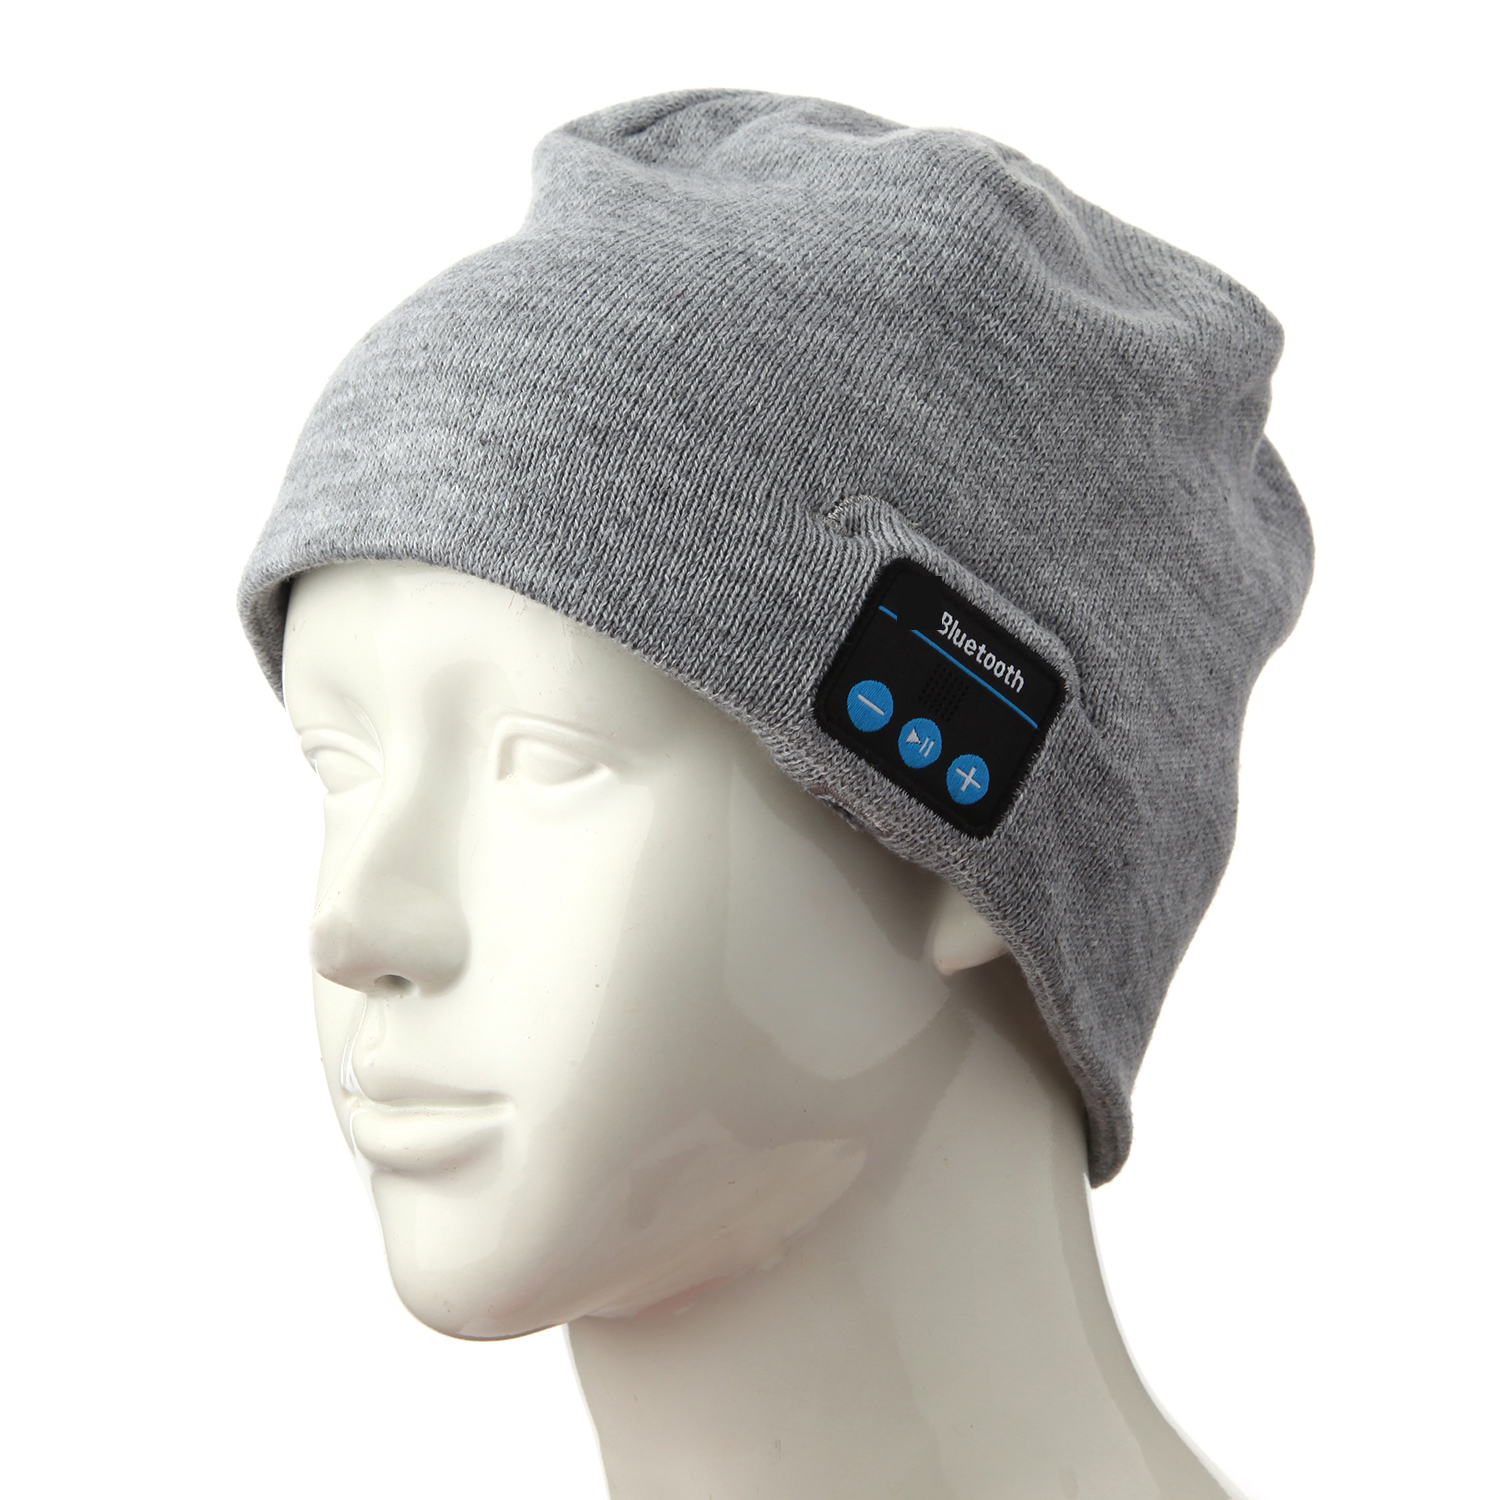 FINGO Warm Beanie Hat Wireless Bluetooth Smart Cap Headphone Speaker with Mic Grey